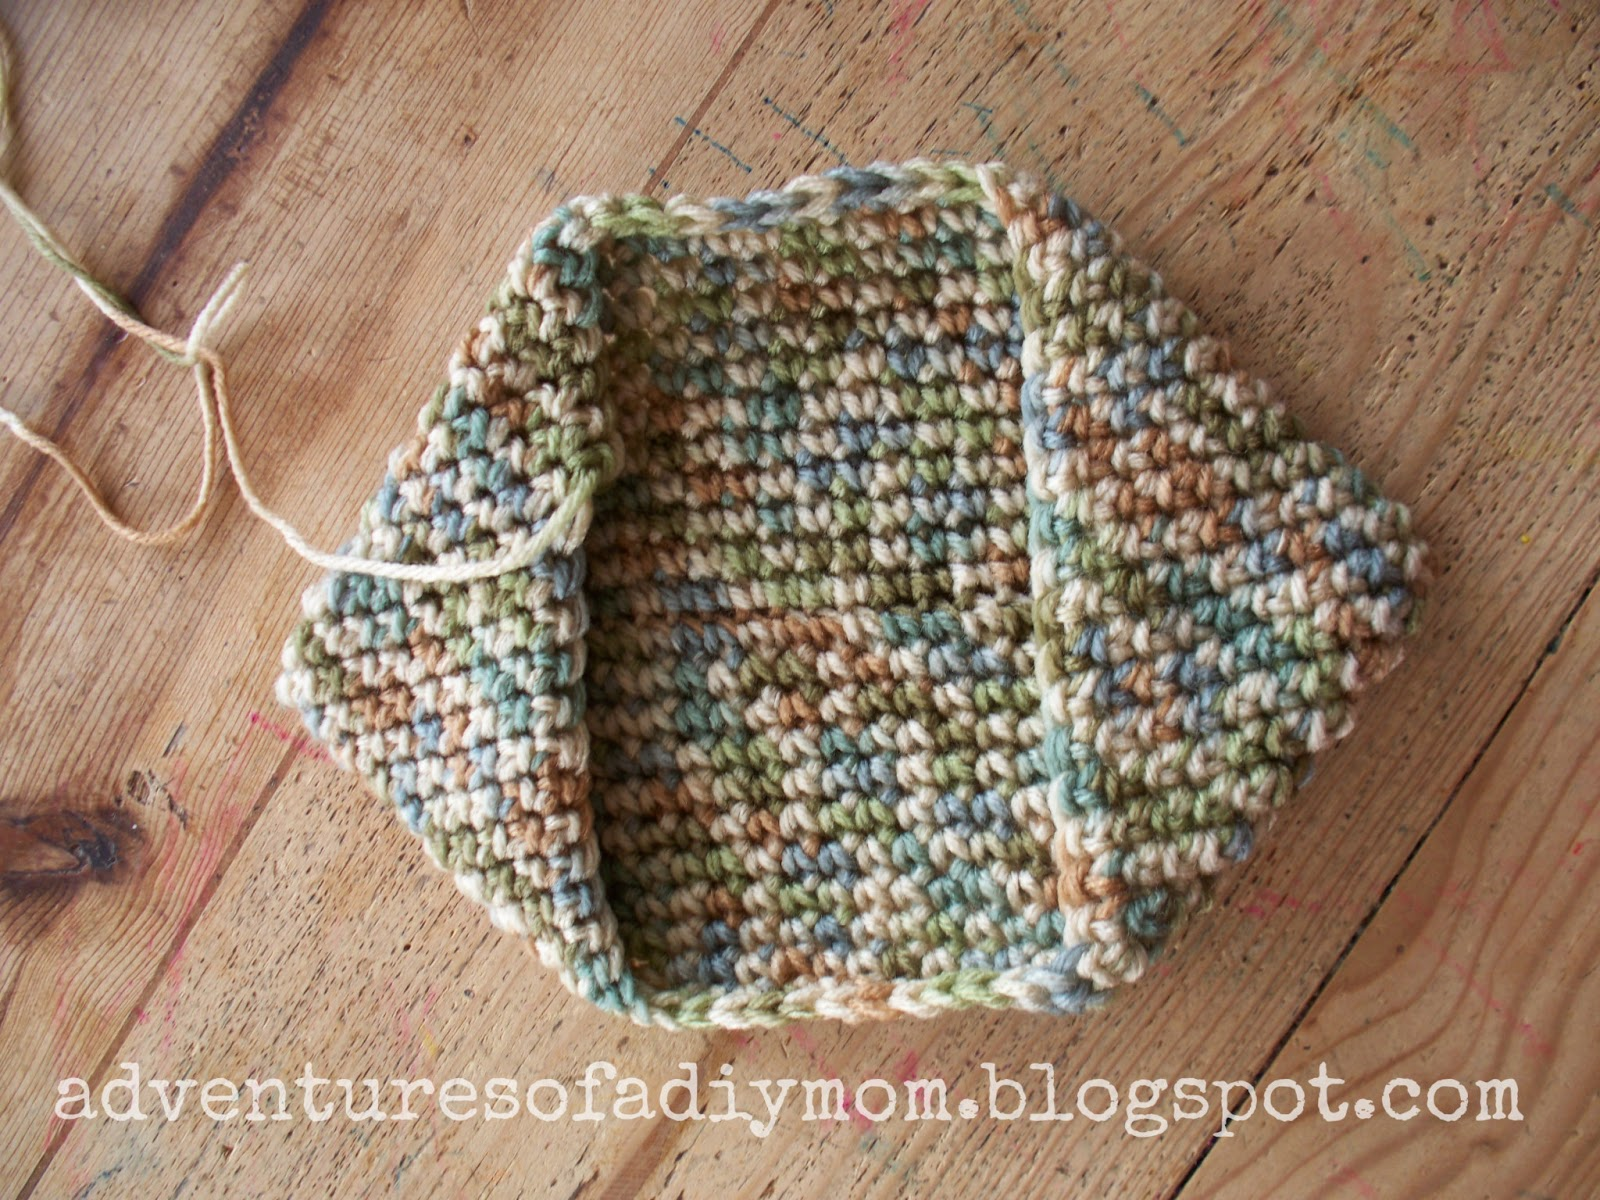 How to Crochet a Hotpad - Super easy version! - Adventures of a DIY Mom